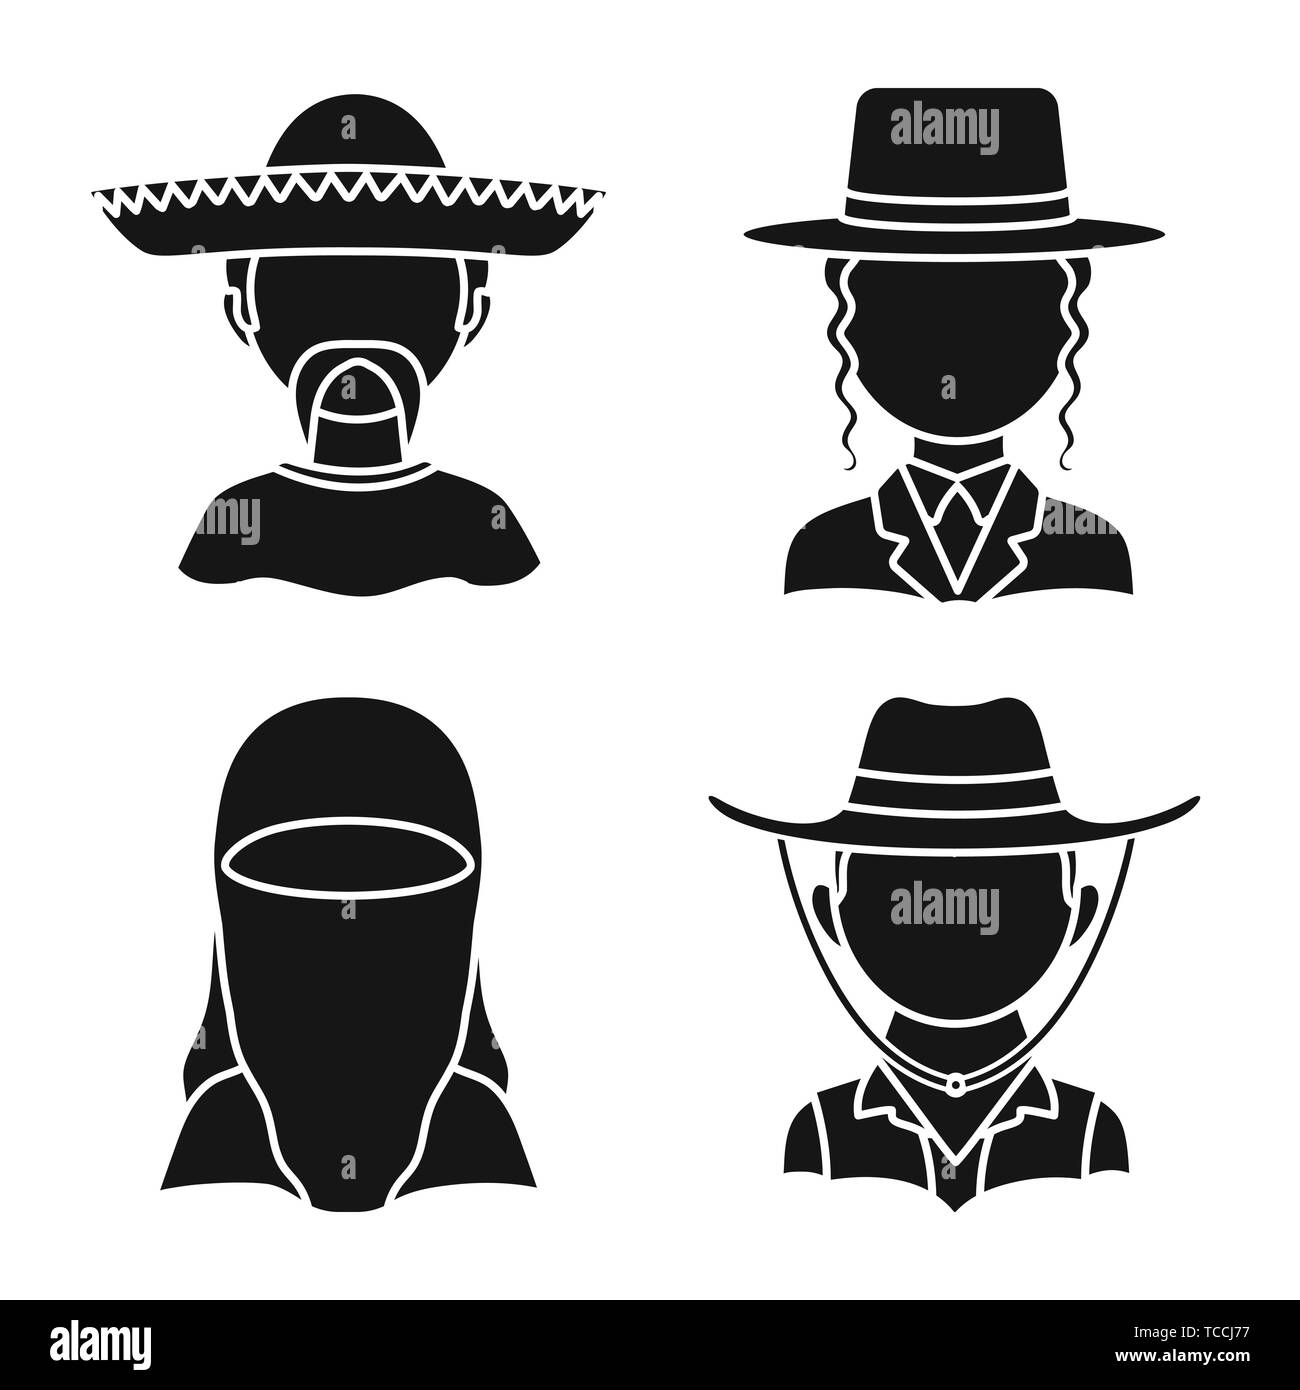 Vector design of person and culture sign. Set of person and race  stock vector illustration. - Stock Image